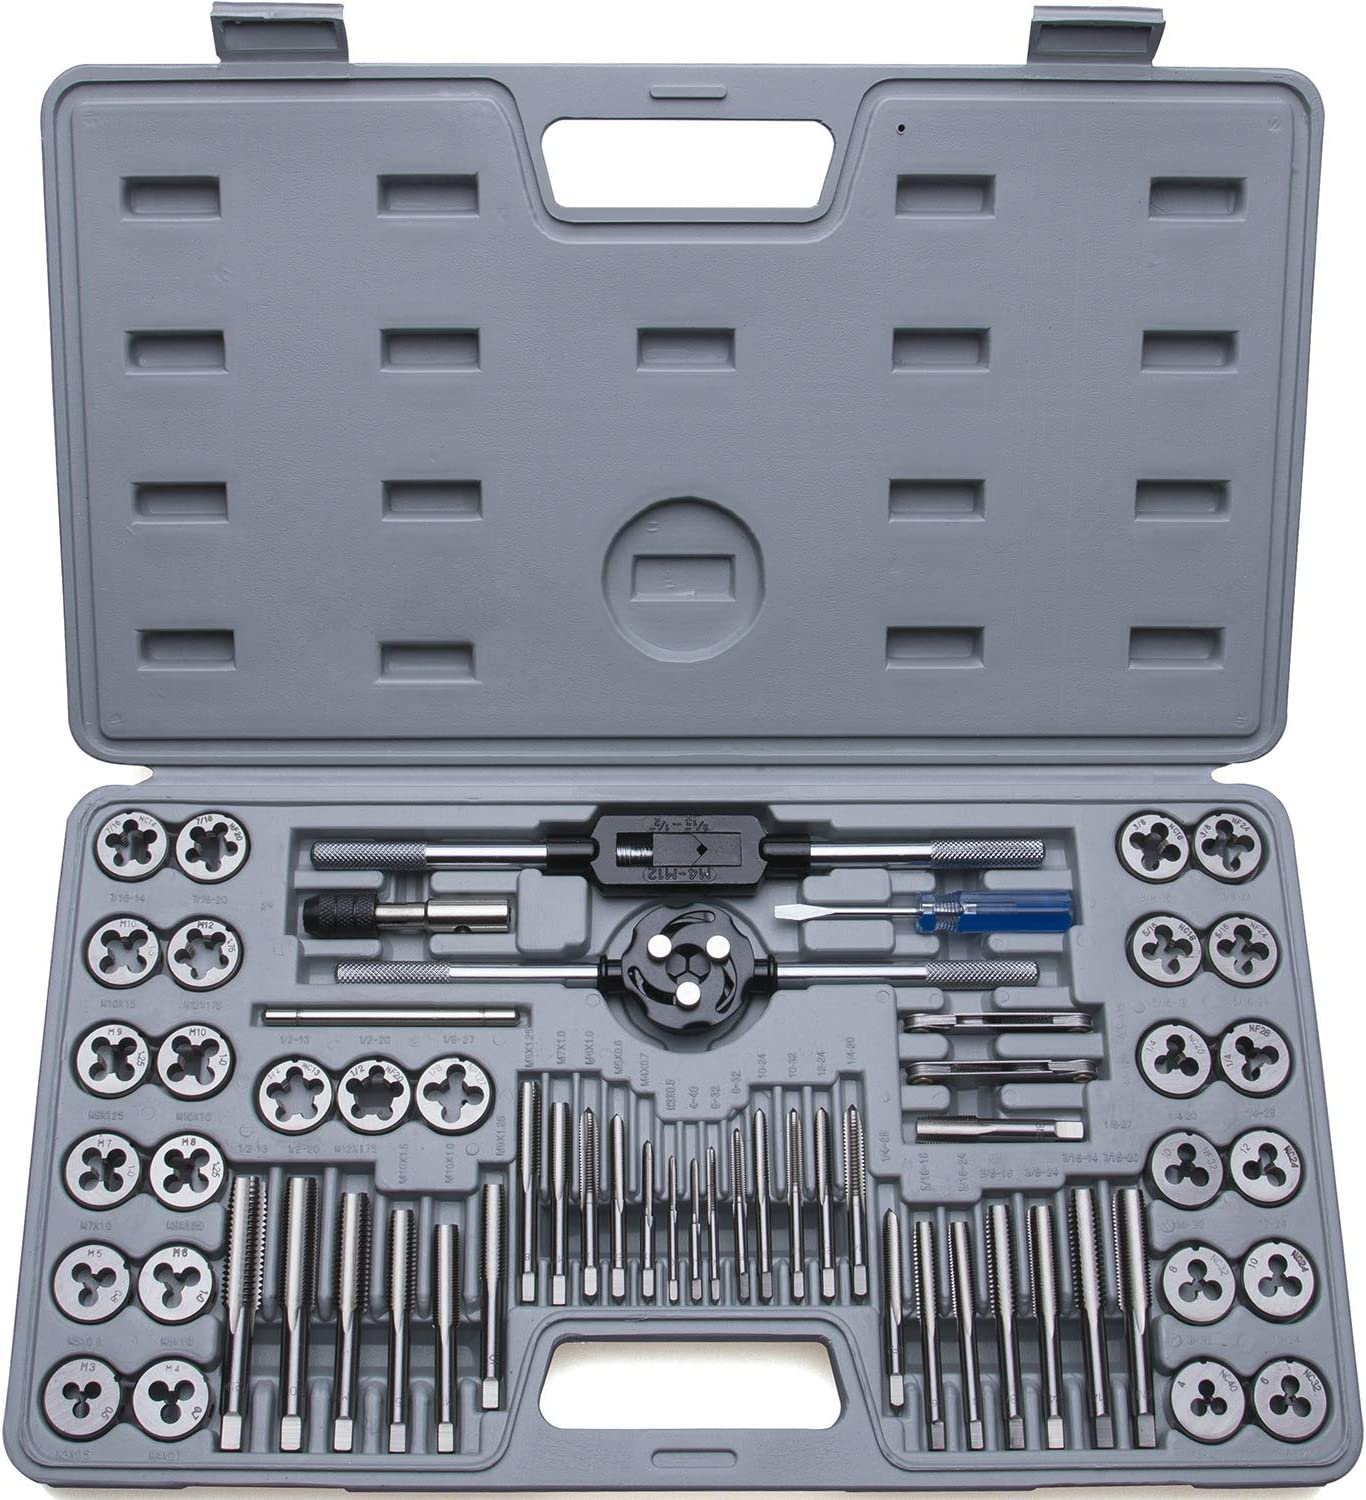 Essential Threading and Rethreading Tool Kit with Complete Accessories and Storage Case Coarse and Fine Threads 60-Piece Master Tap and Die Set Include Both SAE Inch and Metric Sizes